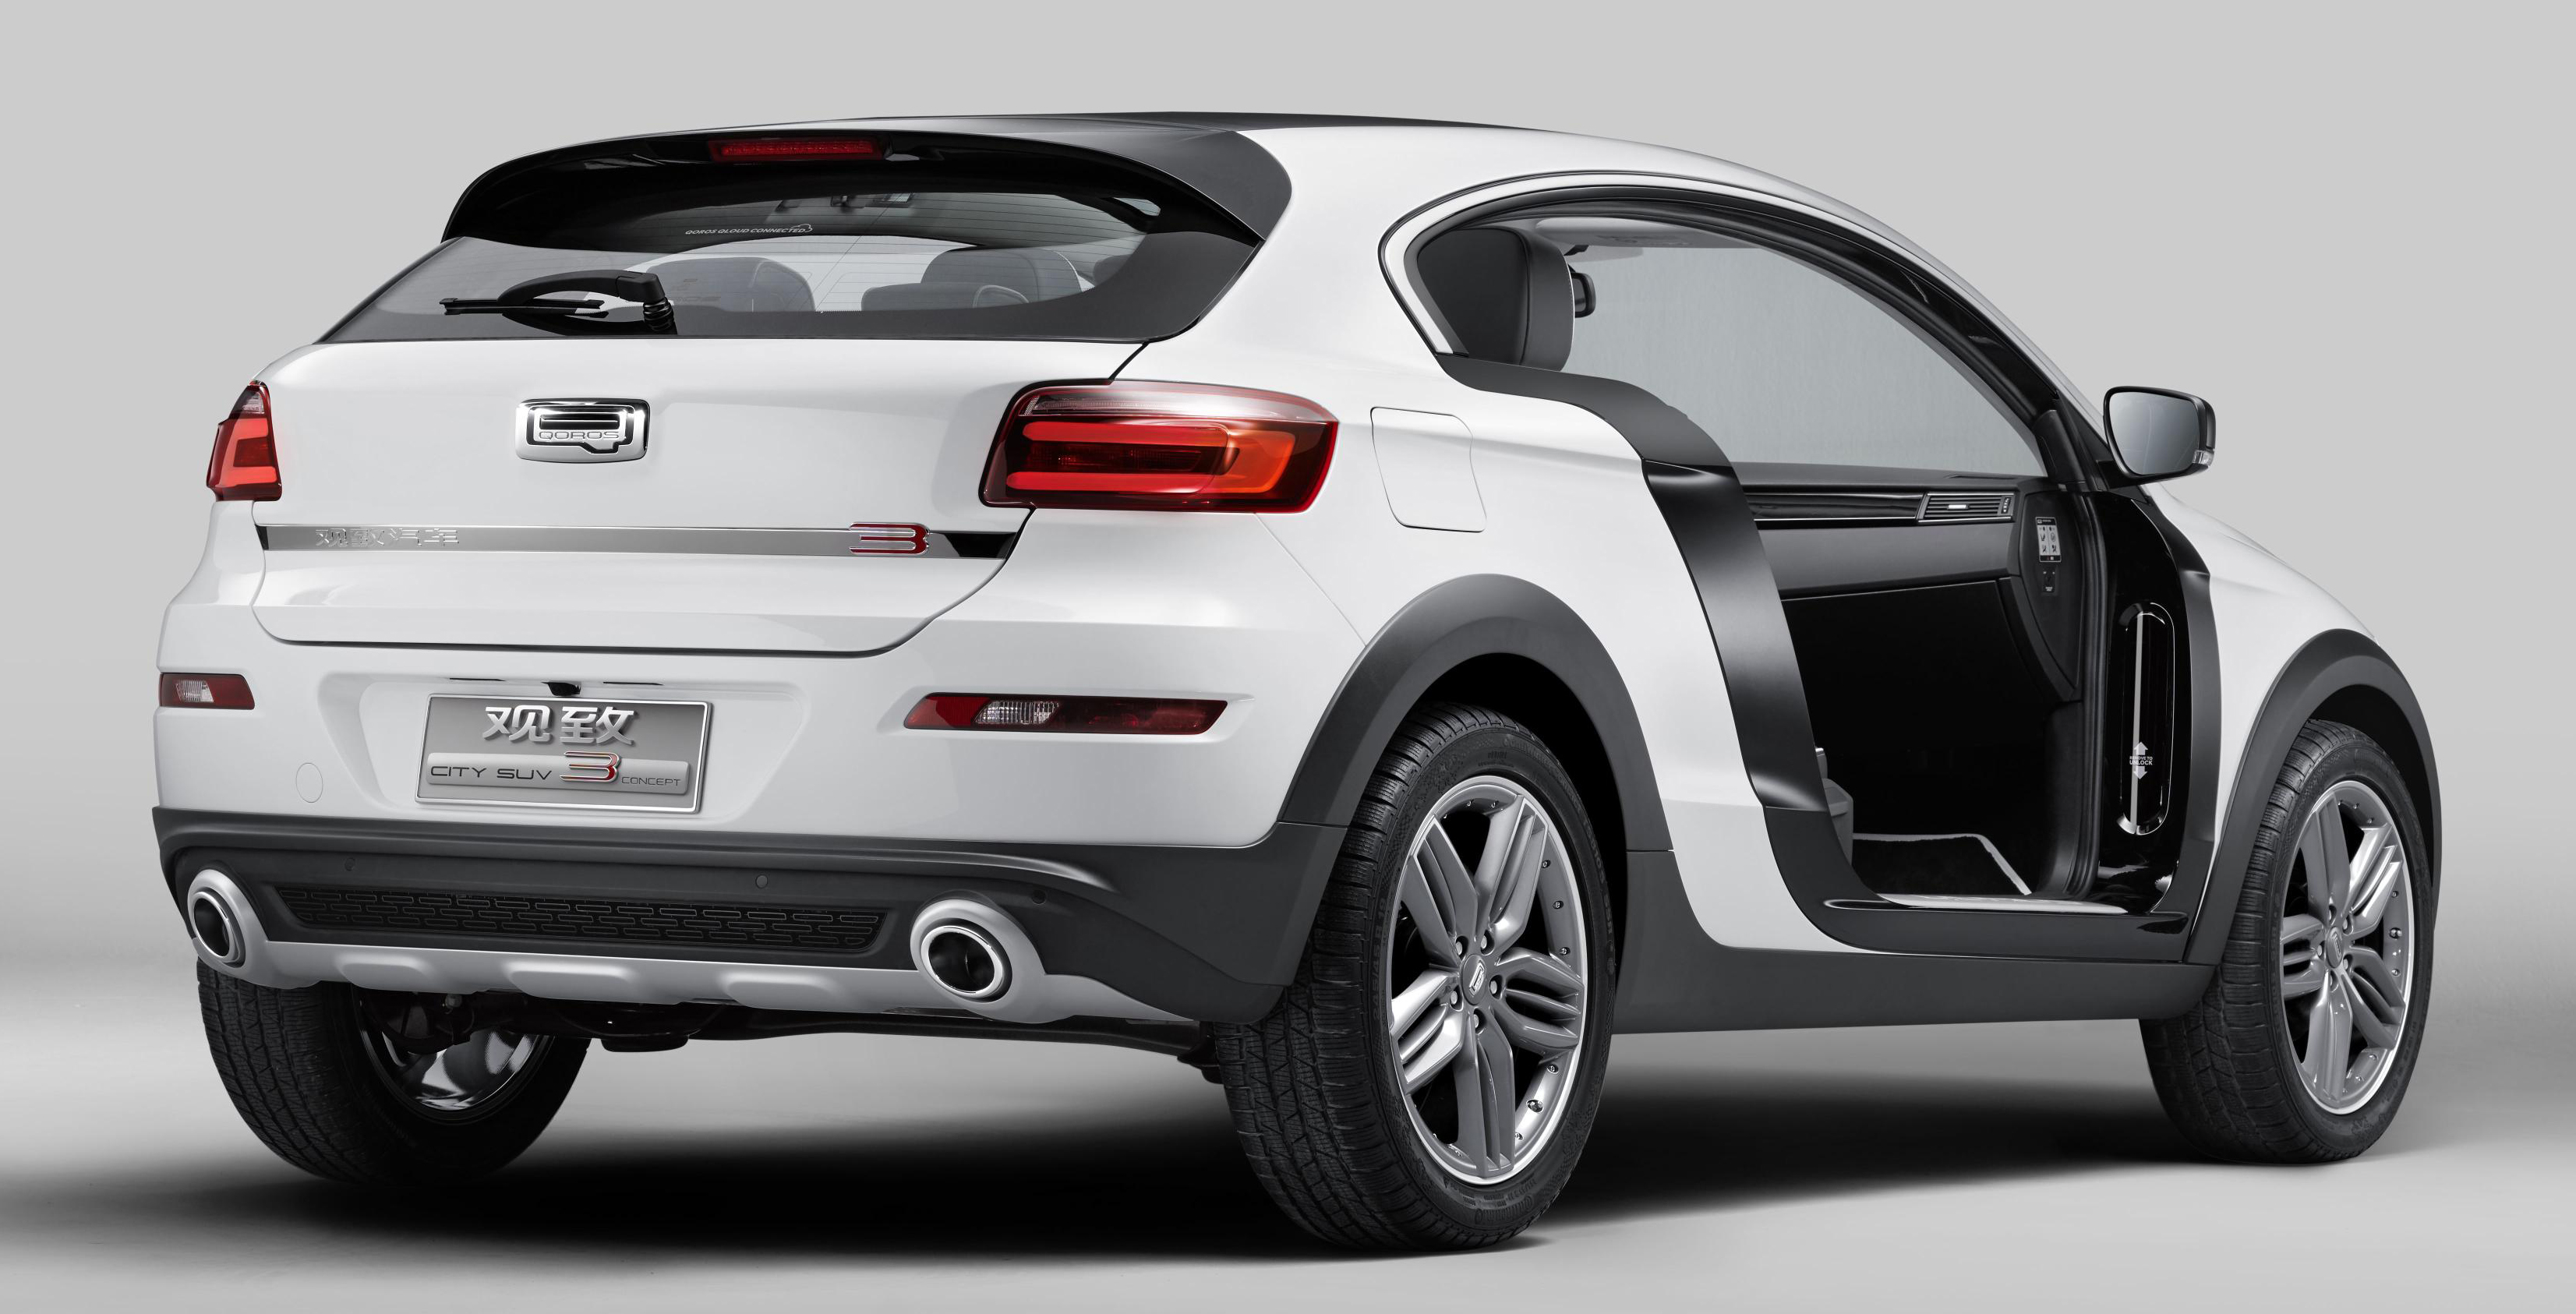 Qoros 3 City Suv 1 6t Makes Debut In Guangzhou Image 290080